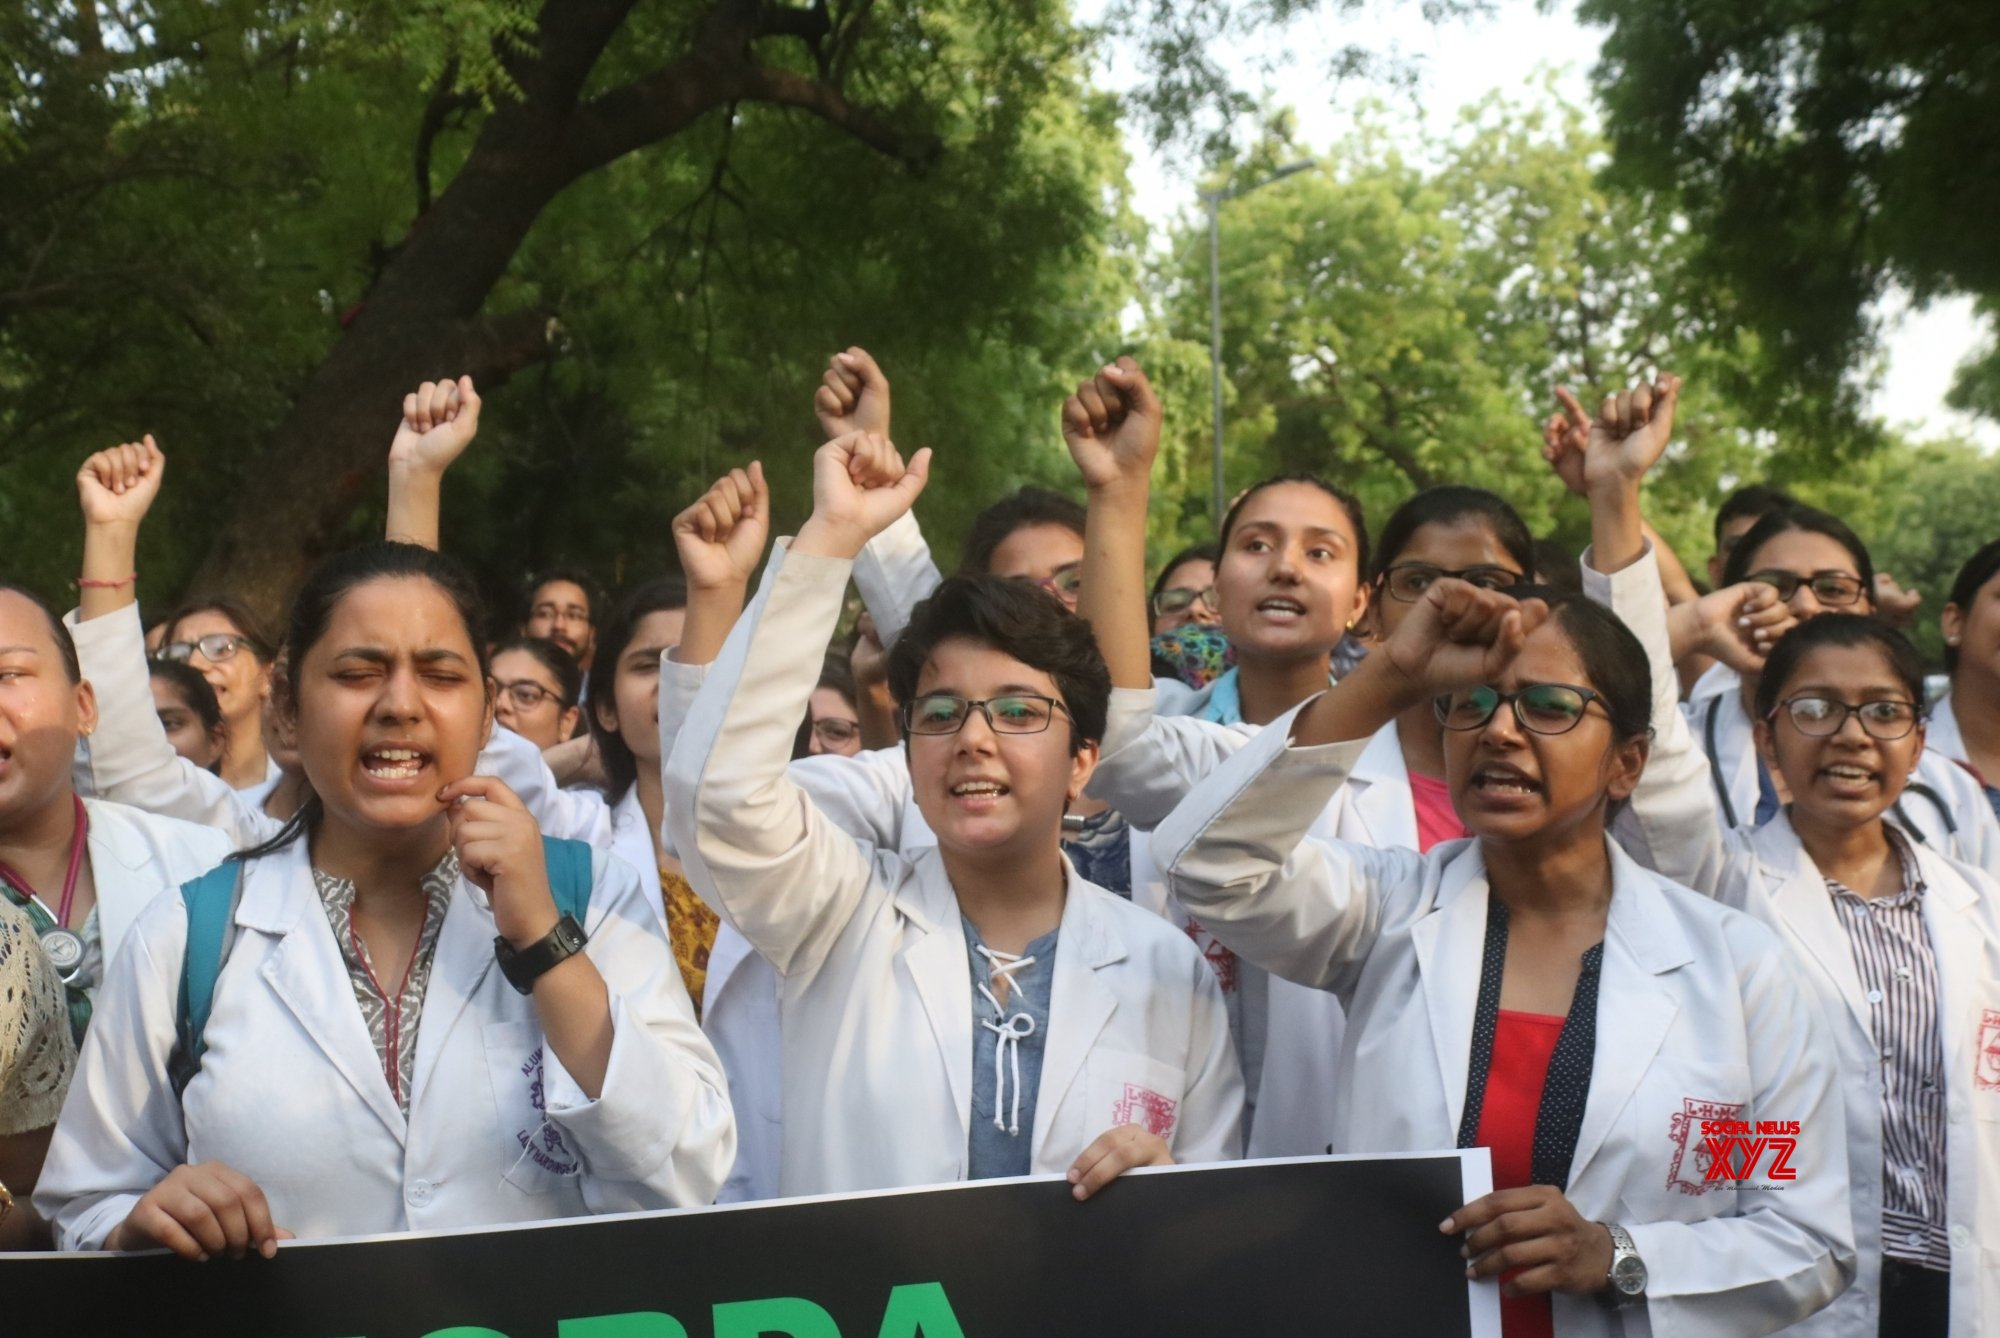 New Delhi: Medical students' protest against attack on doctors in Kolkata #Gallery